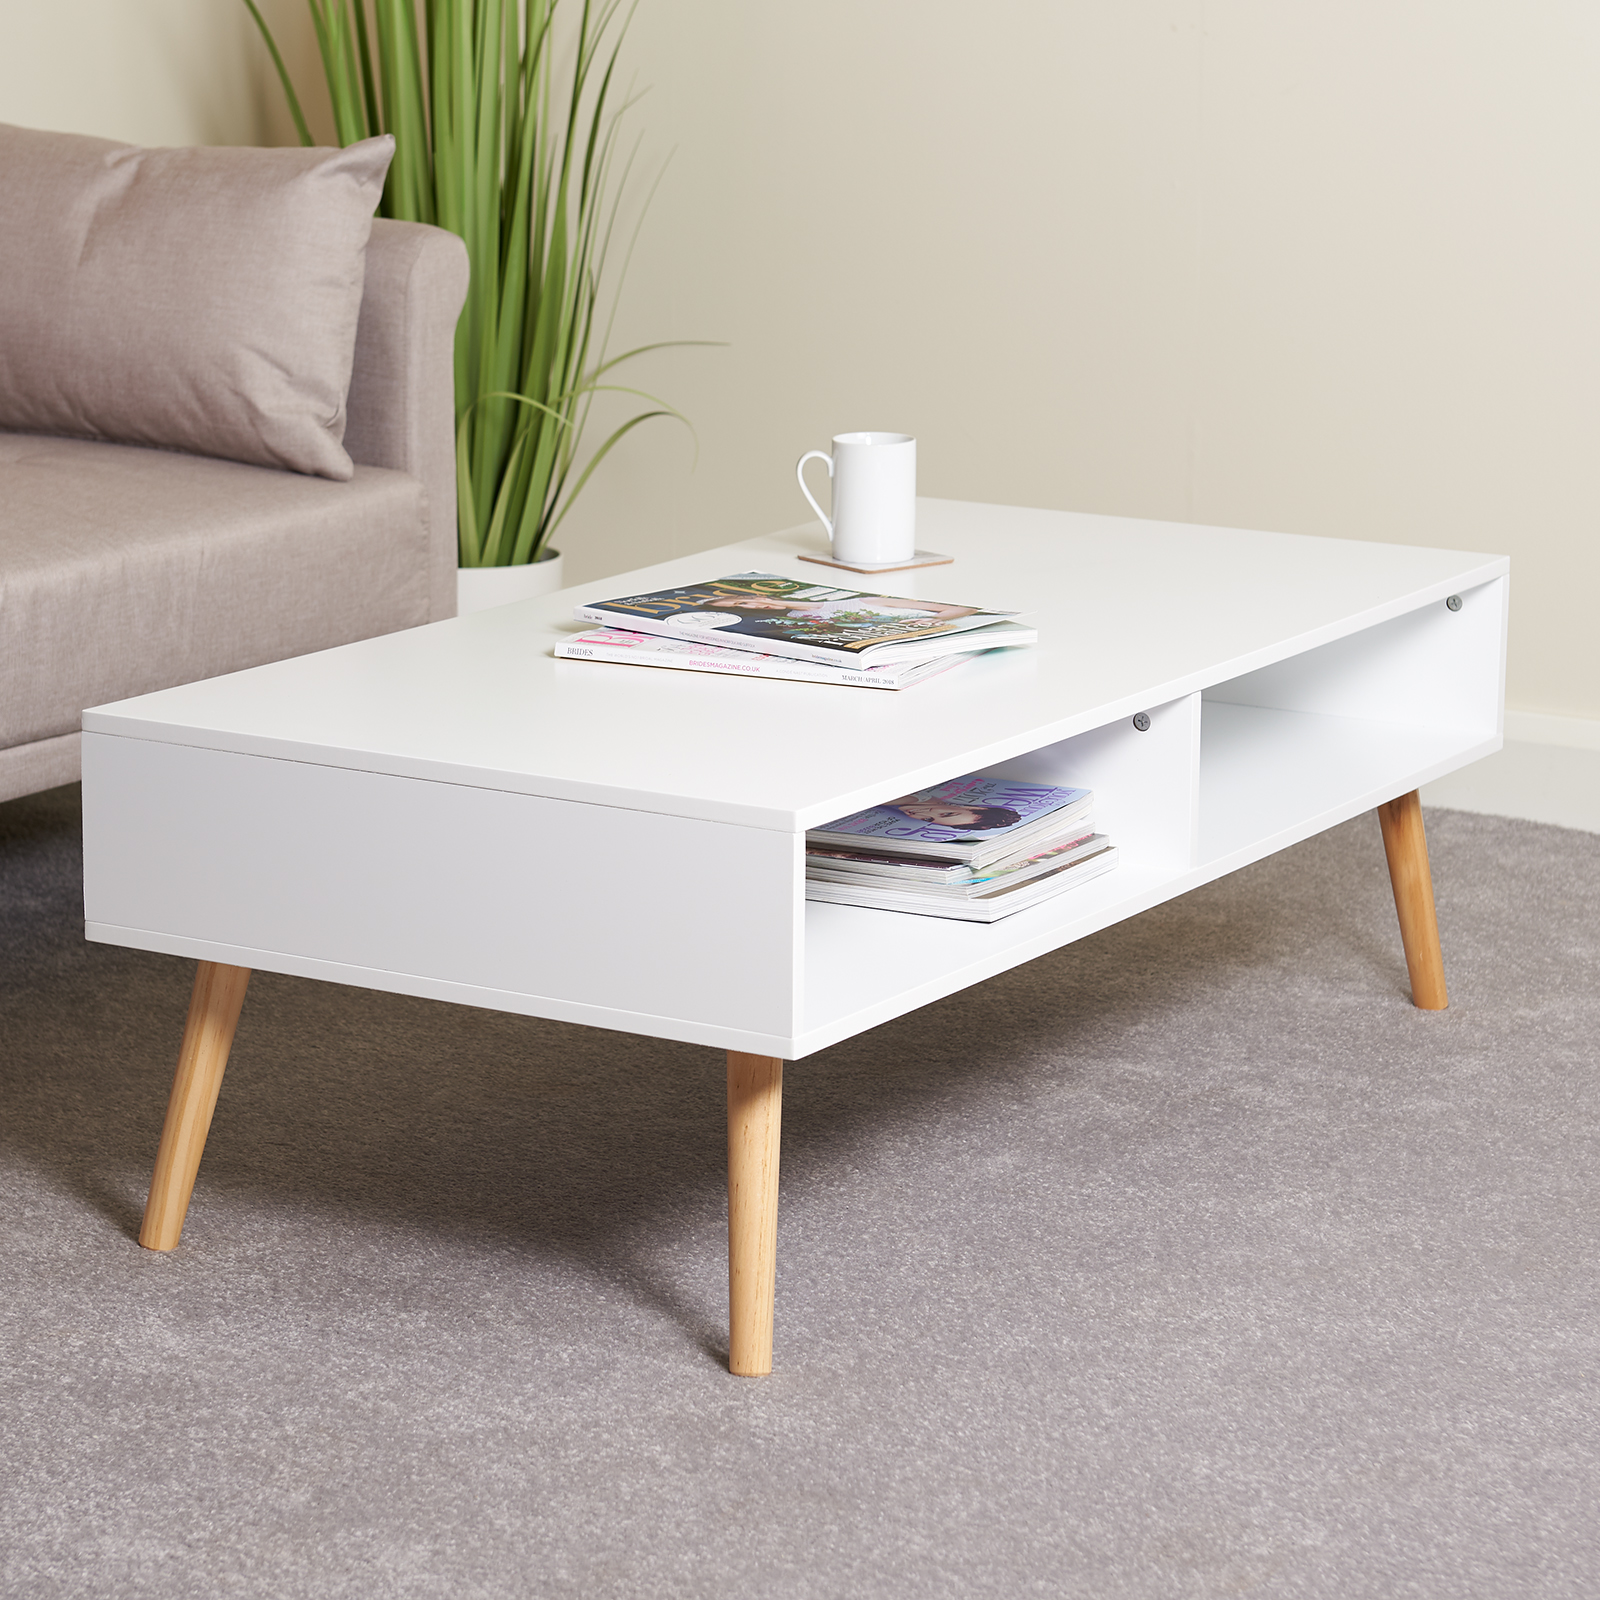 Details About Hartleys Large White Rectangular Low Coffee Table Living Room  Furniture Storage